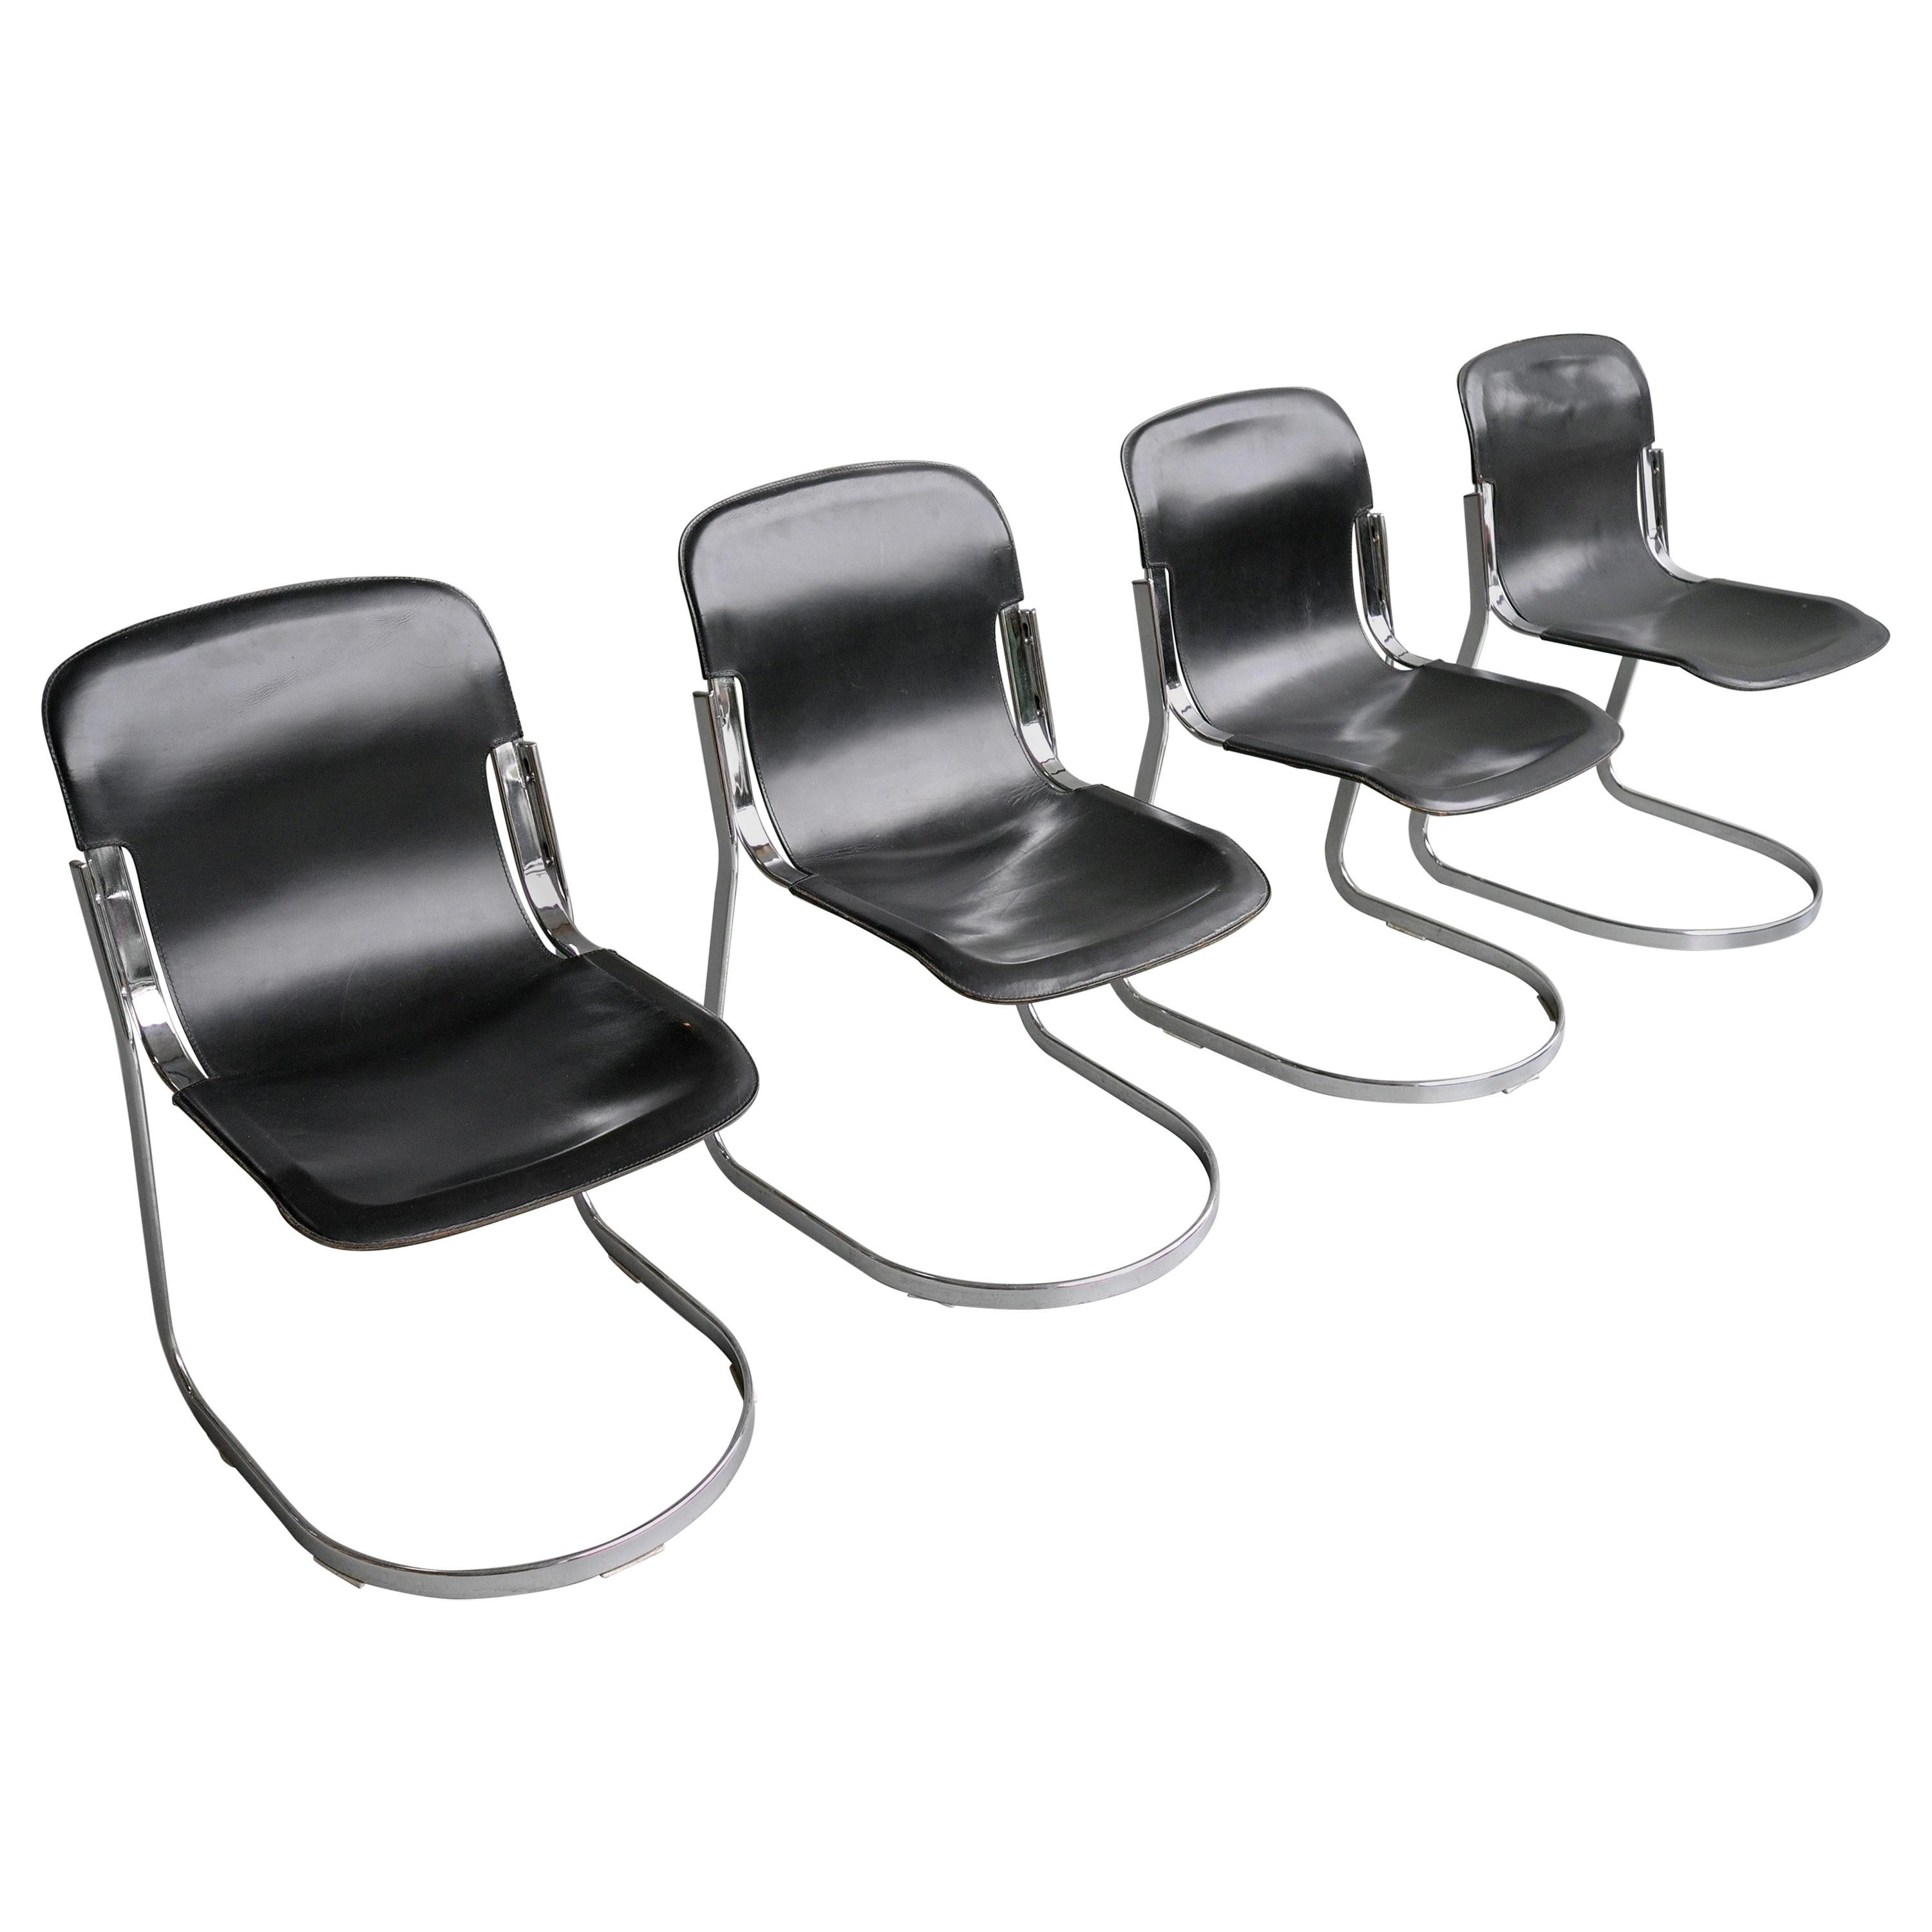 Willy Rizzo Black Sling Leather and Chrome Chairs for Cidue, Italy, 1970s